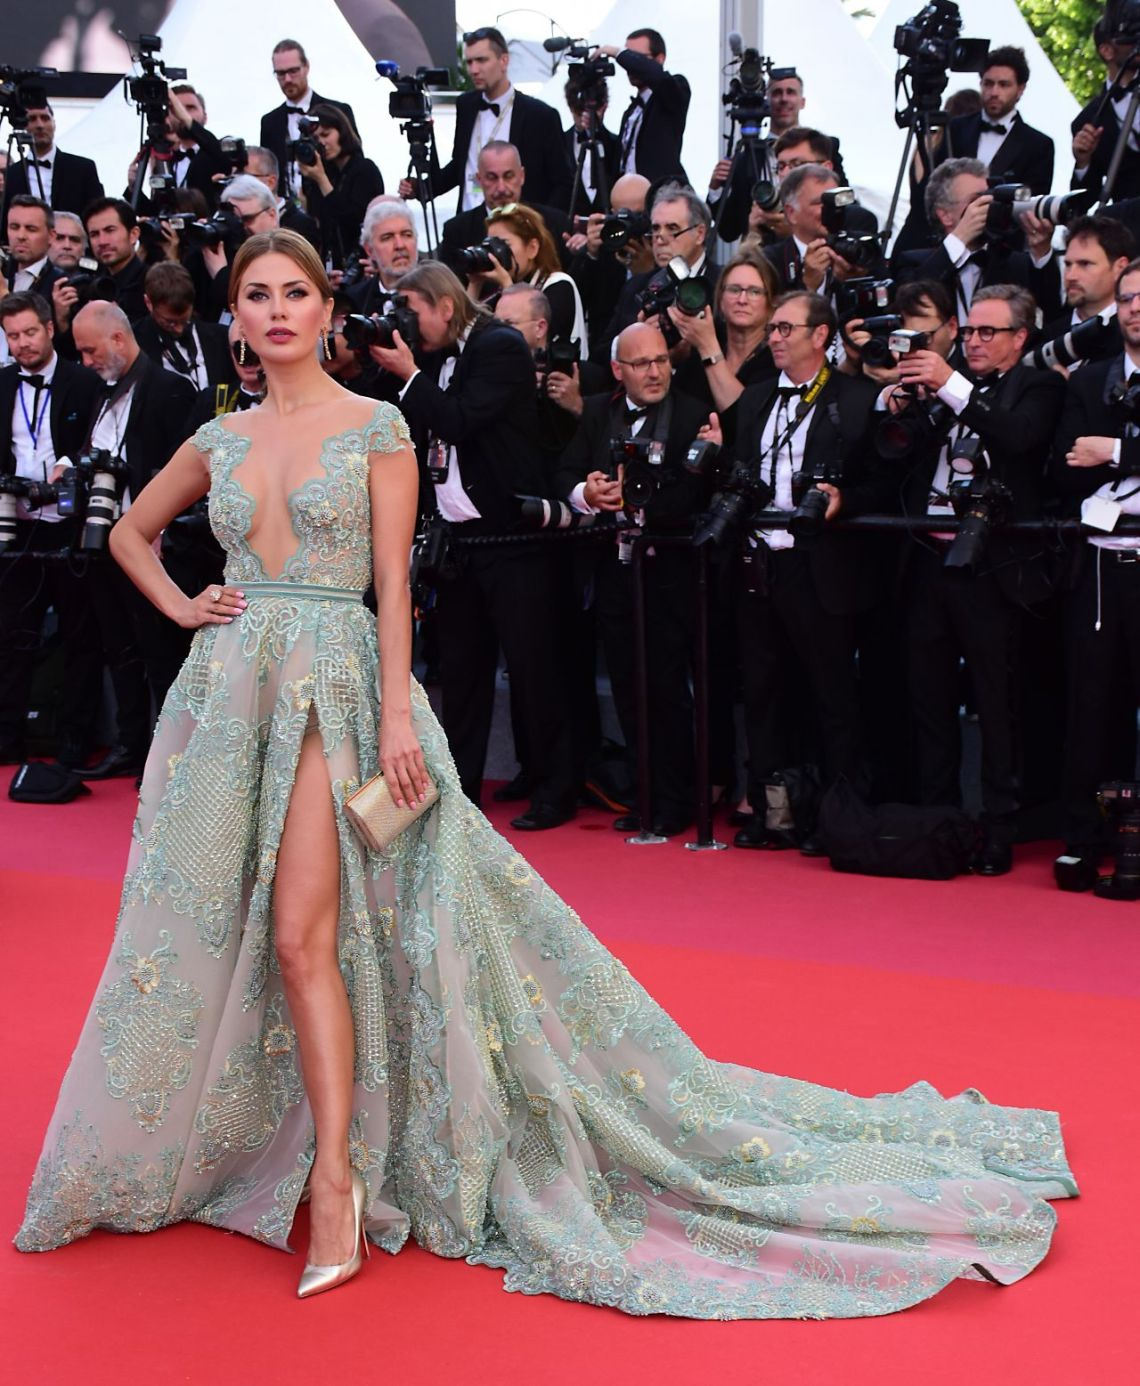 victoria-bonya-everybody-knows-premiere-and-cannes-film-festival-2018-opening-ceremony-2maison esthere maryline